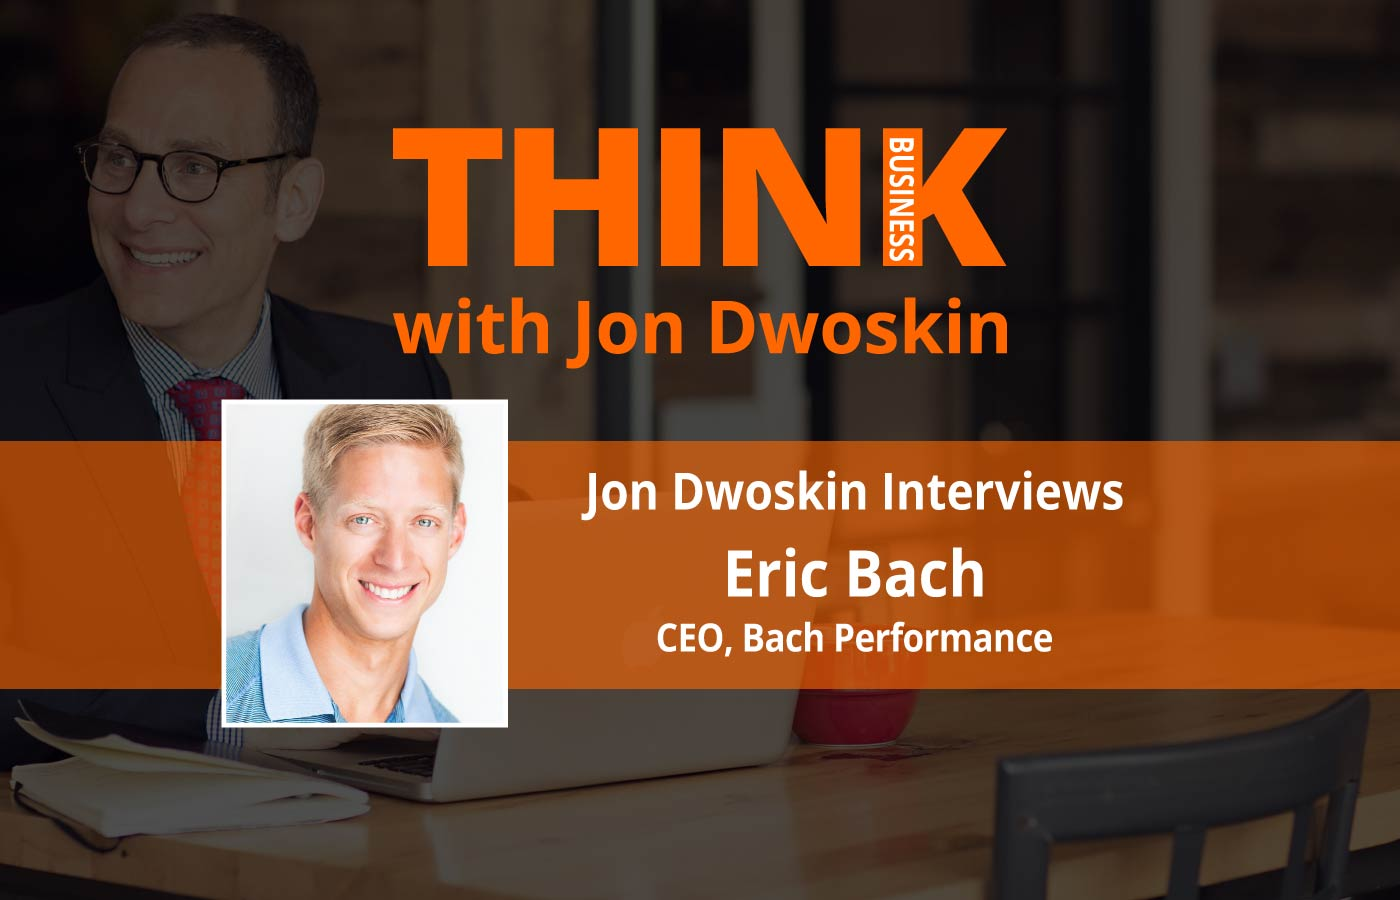 THINK Business: Jon Dwoskin Interviews Eric Bach, CEO, Bach Performance